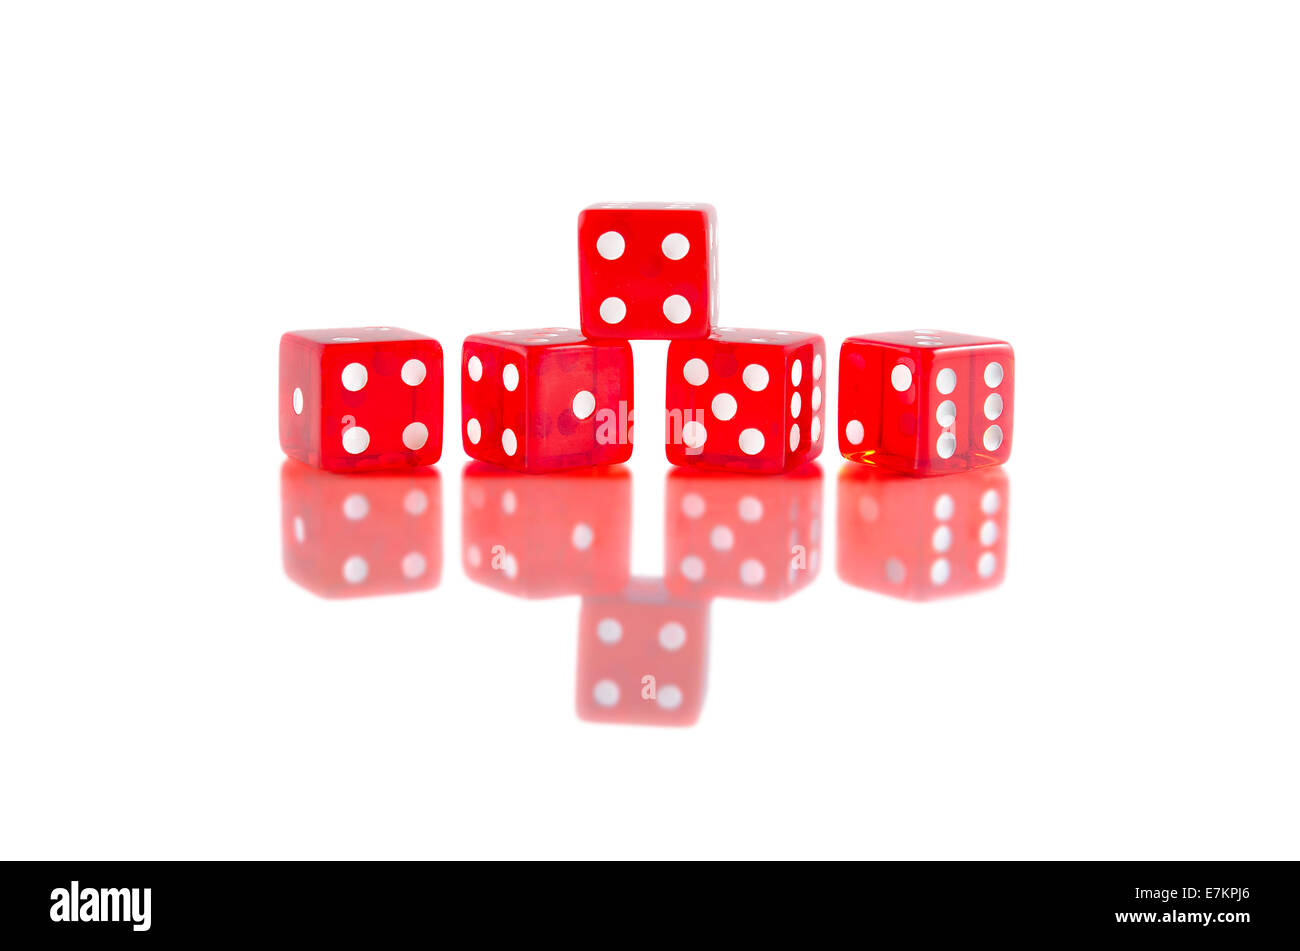 Red dice on white isolated background with beautiful reflection. Stock Photo